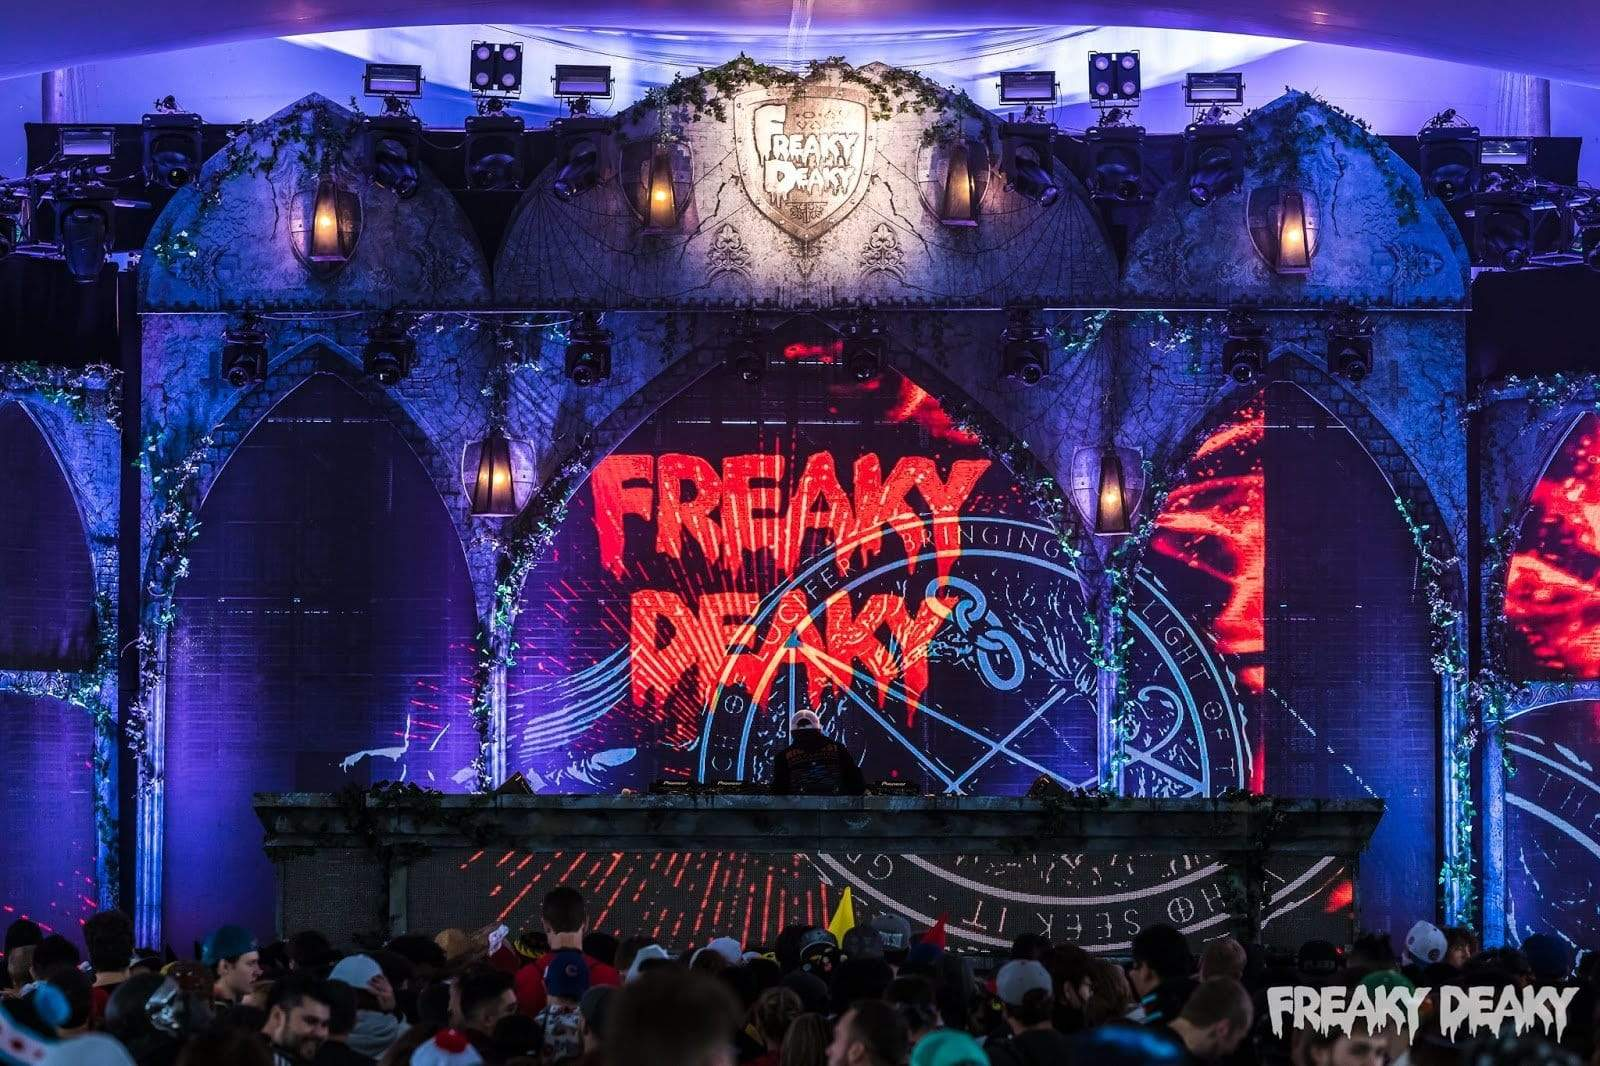 Freaky Deaky Texas - Celebrate Halloween in Houston